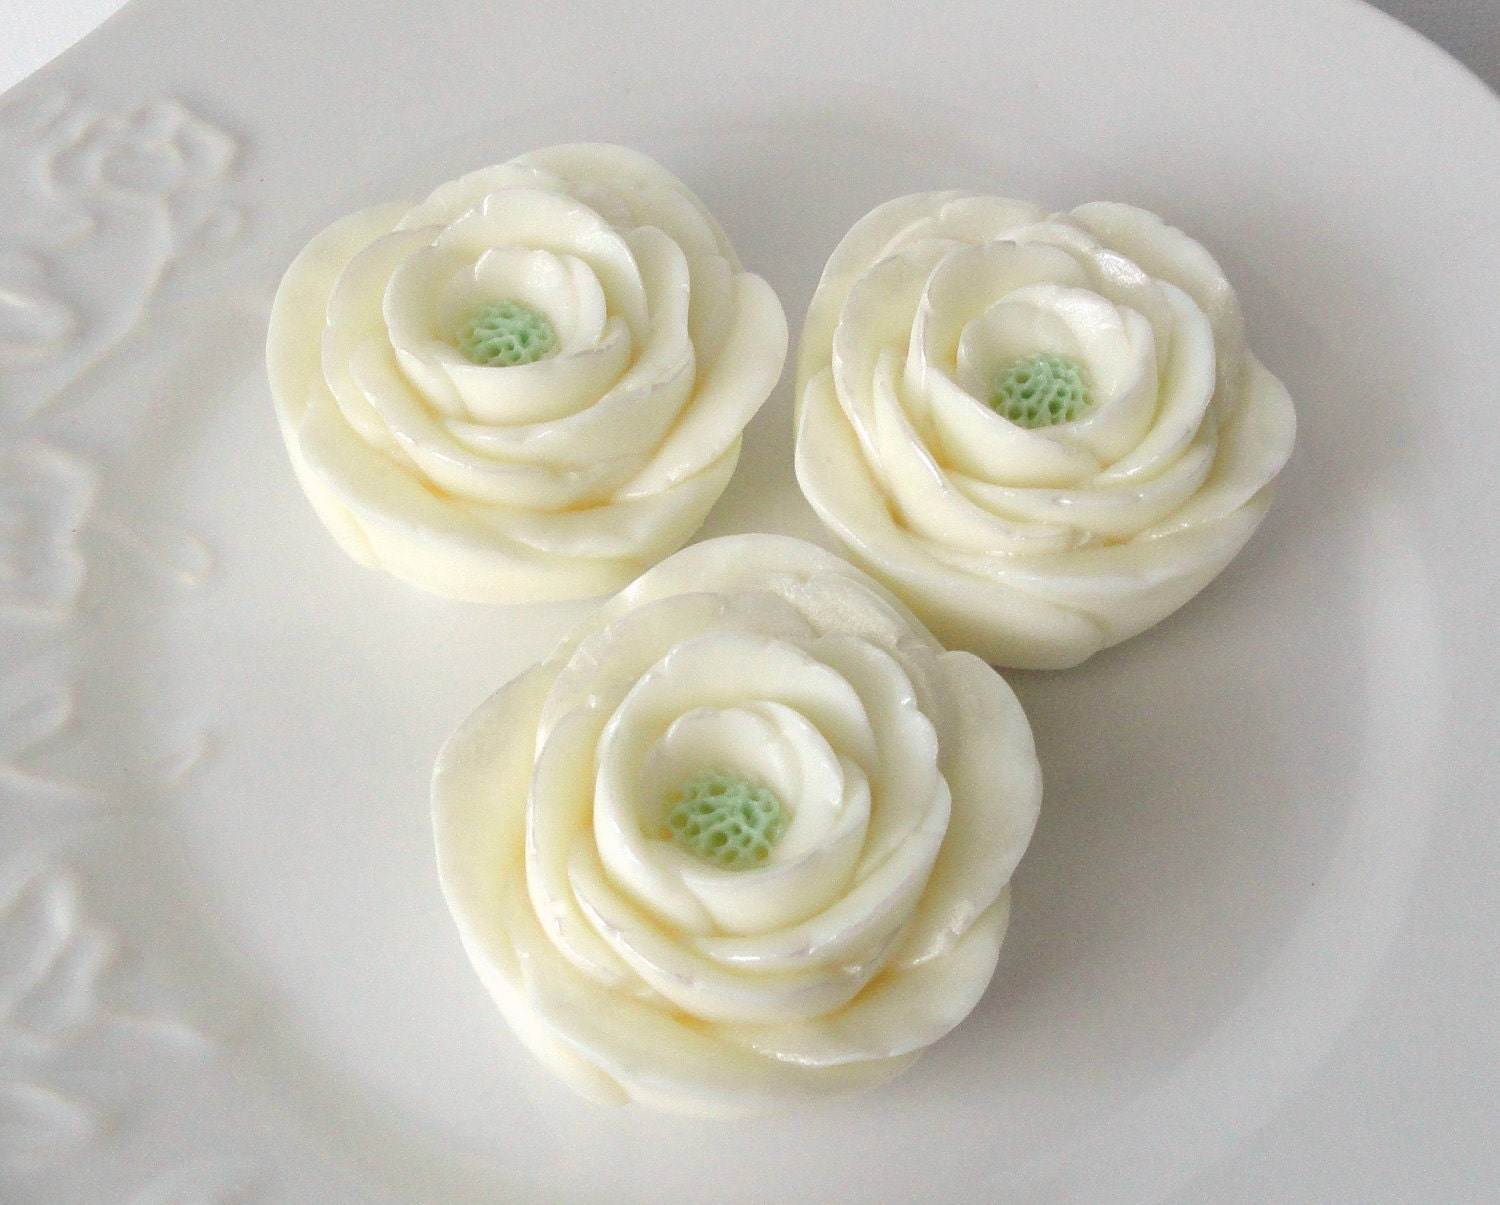 Lovely White Rose Trio-Goat's Milk Soap-Sweet heart Rose Scented